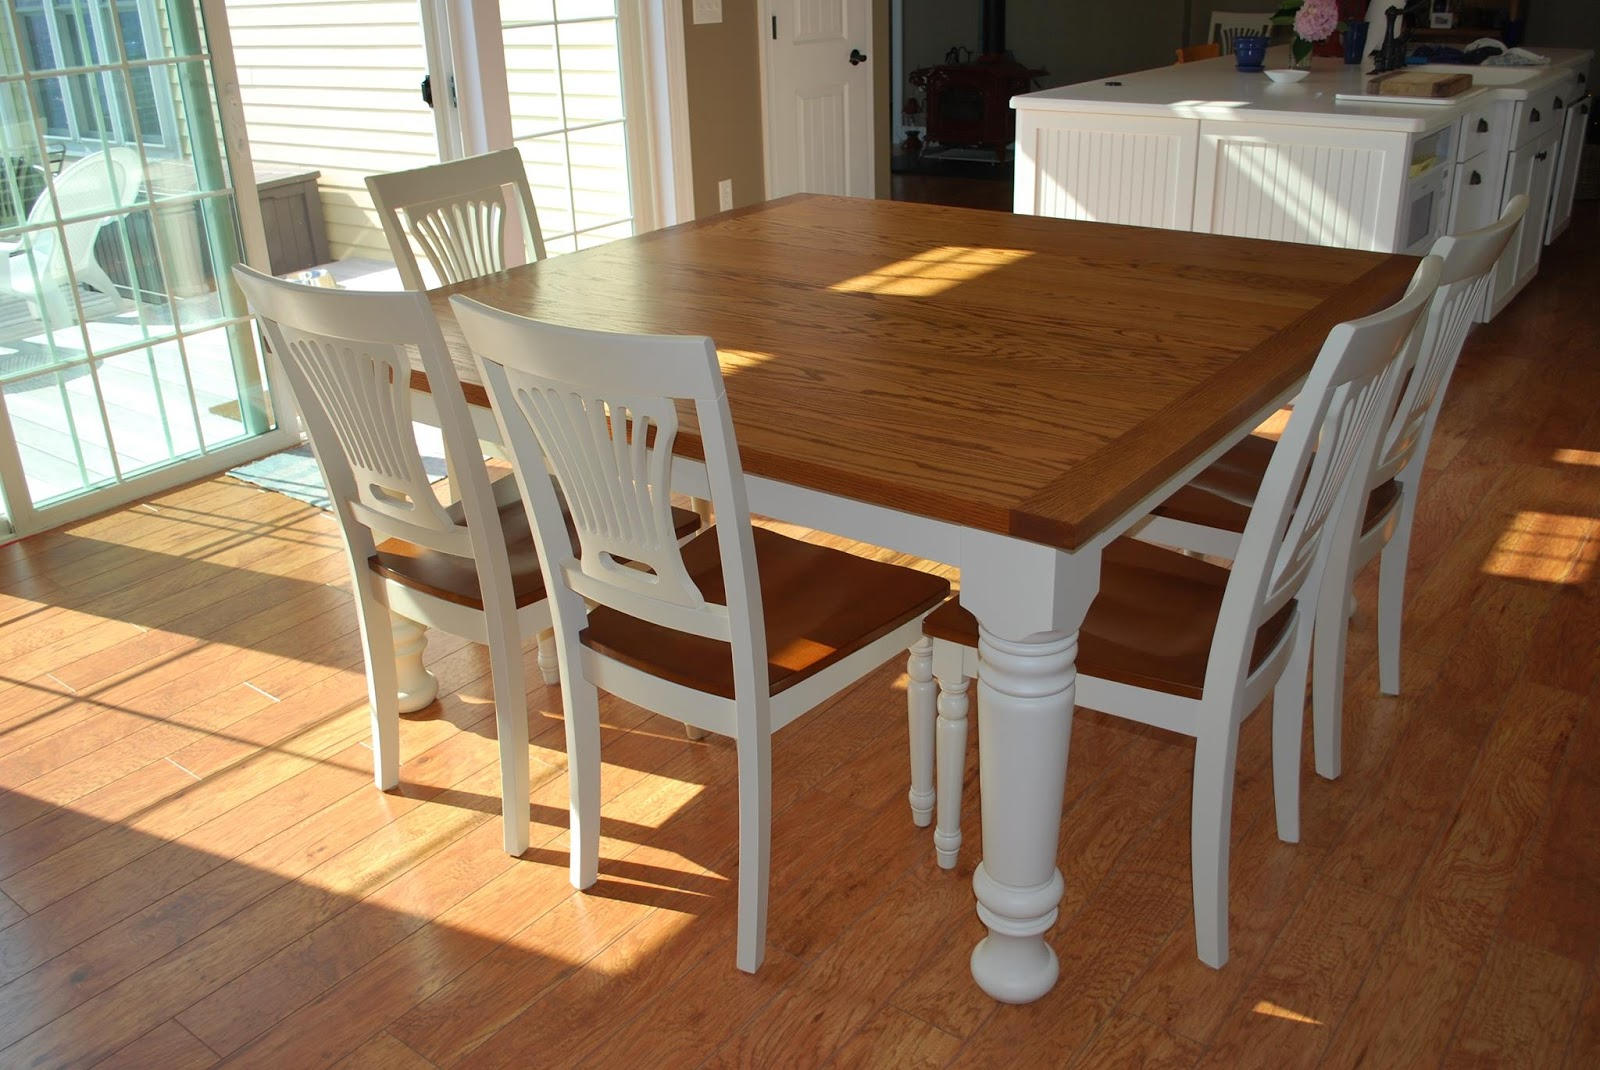 Style kitchen table and chairs oak farmhouse chairs best for Farm style kitchen table